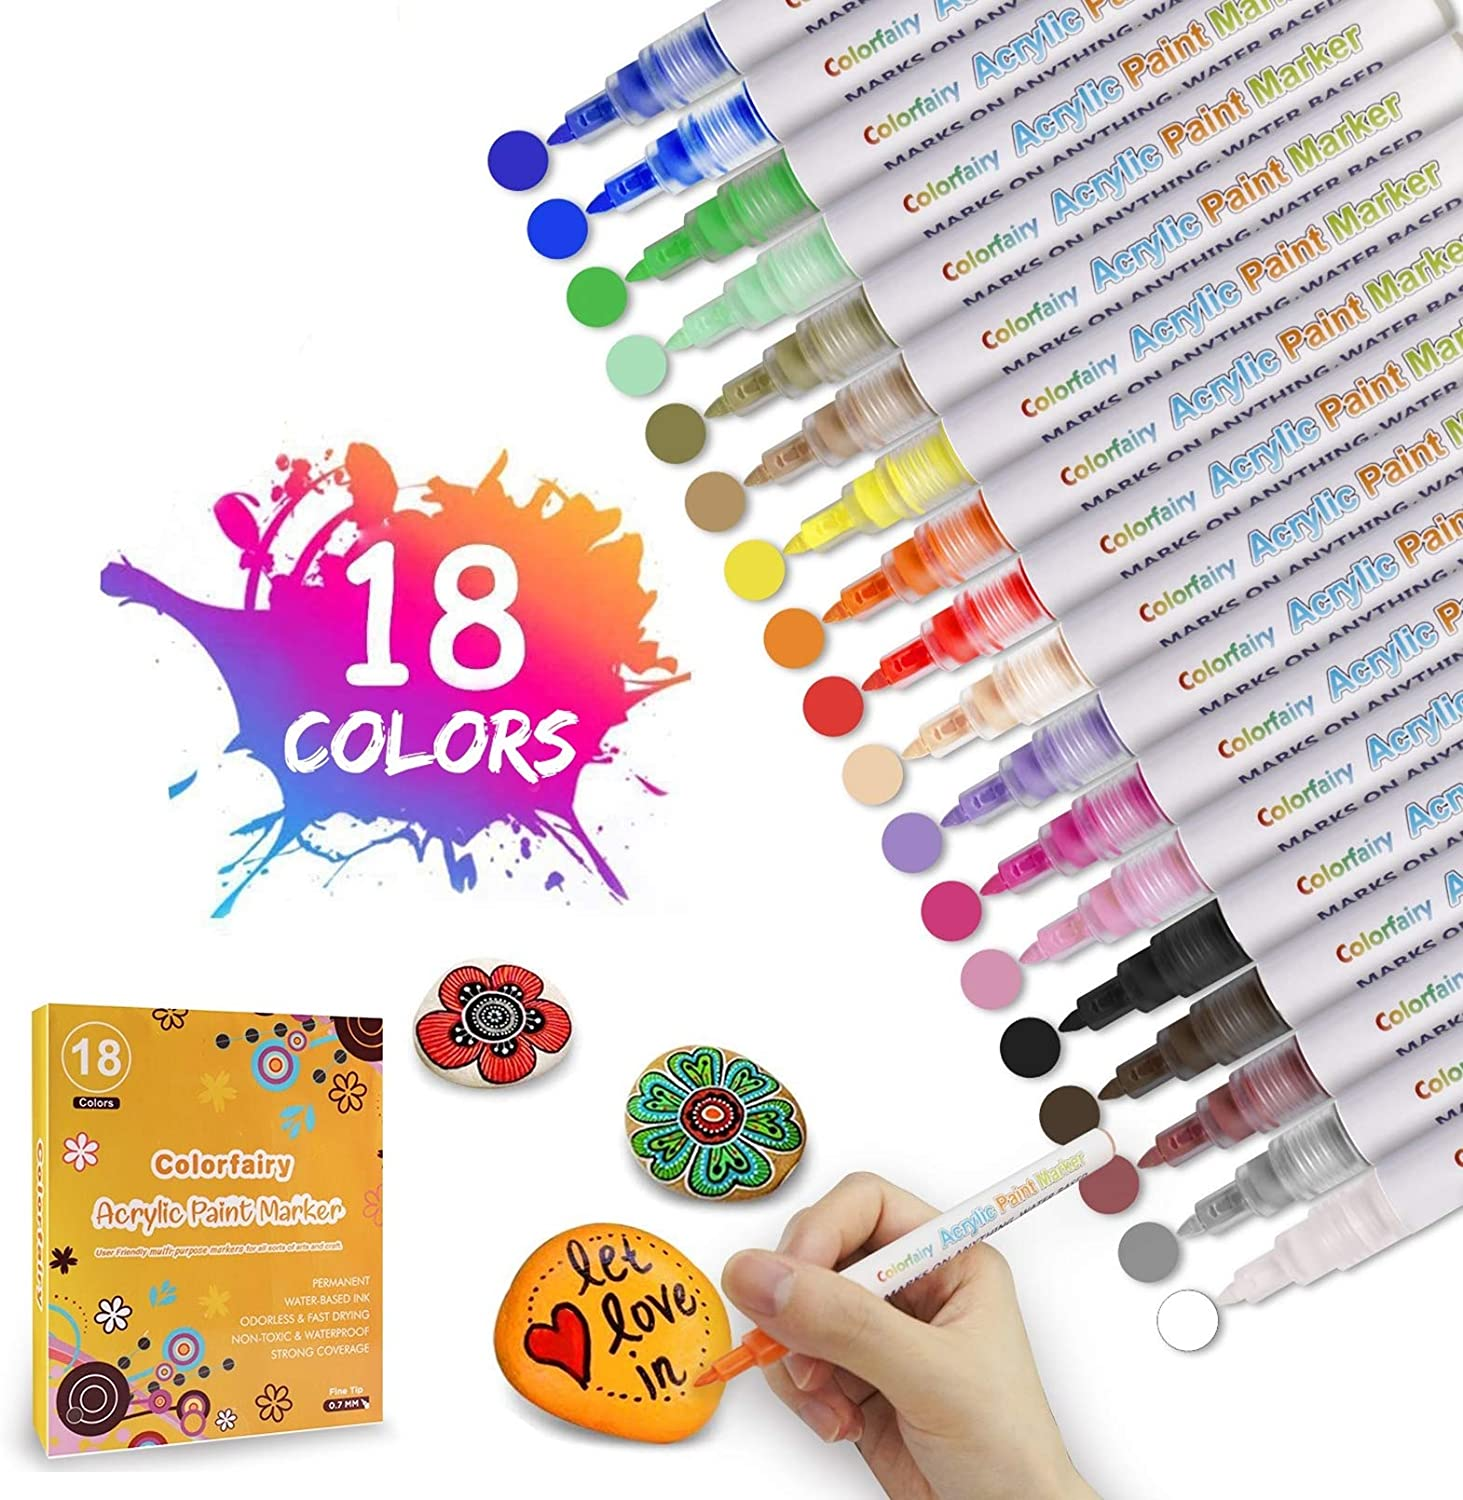 Acrylic Paint Pens 18 Colors Permanent Paint Markers Waterbased Pen Set for Arts